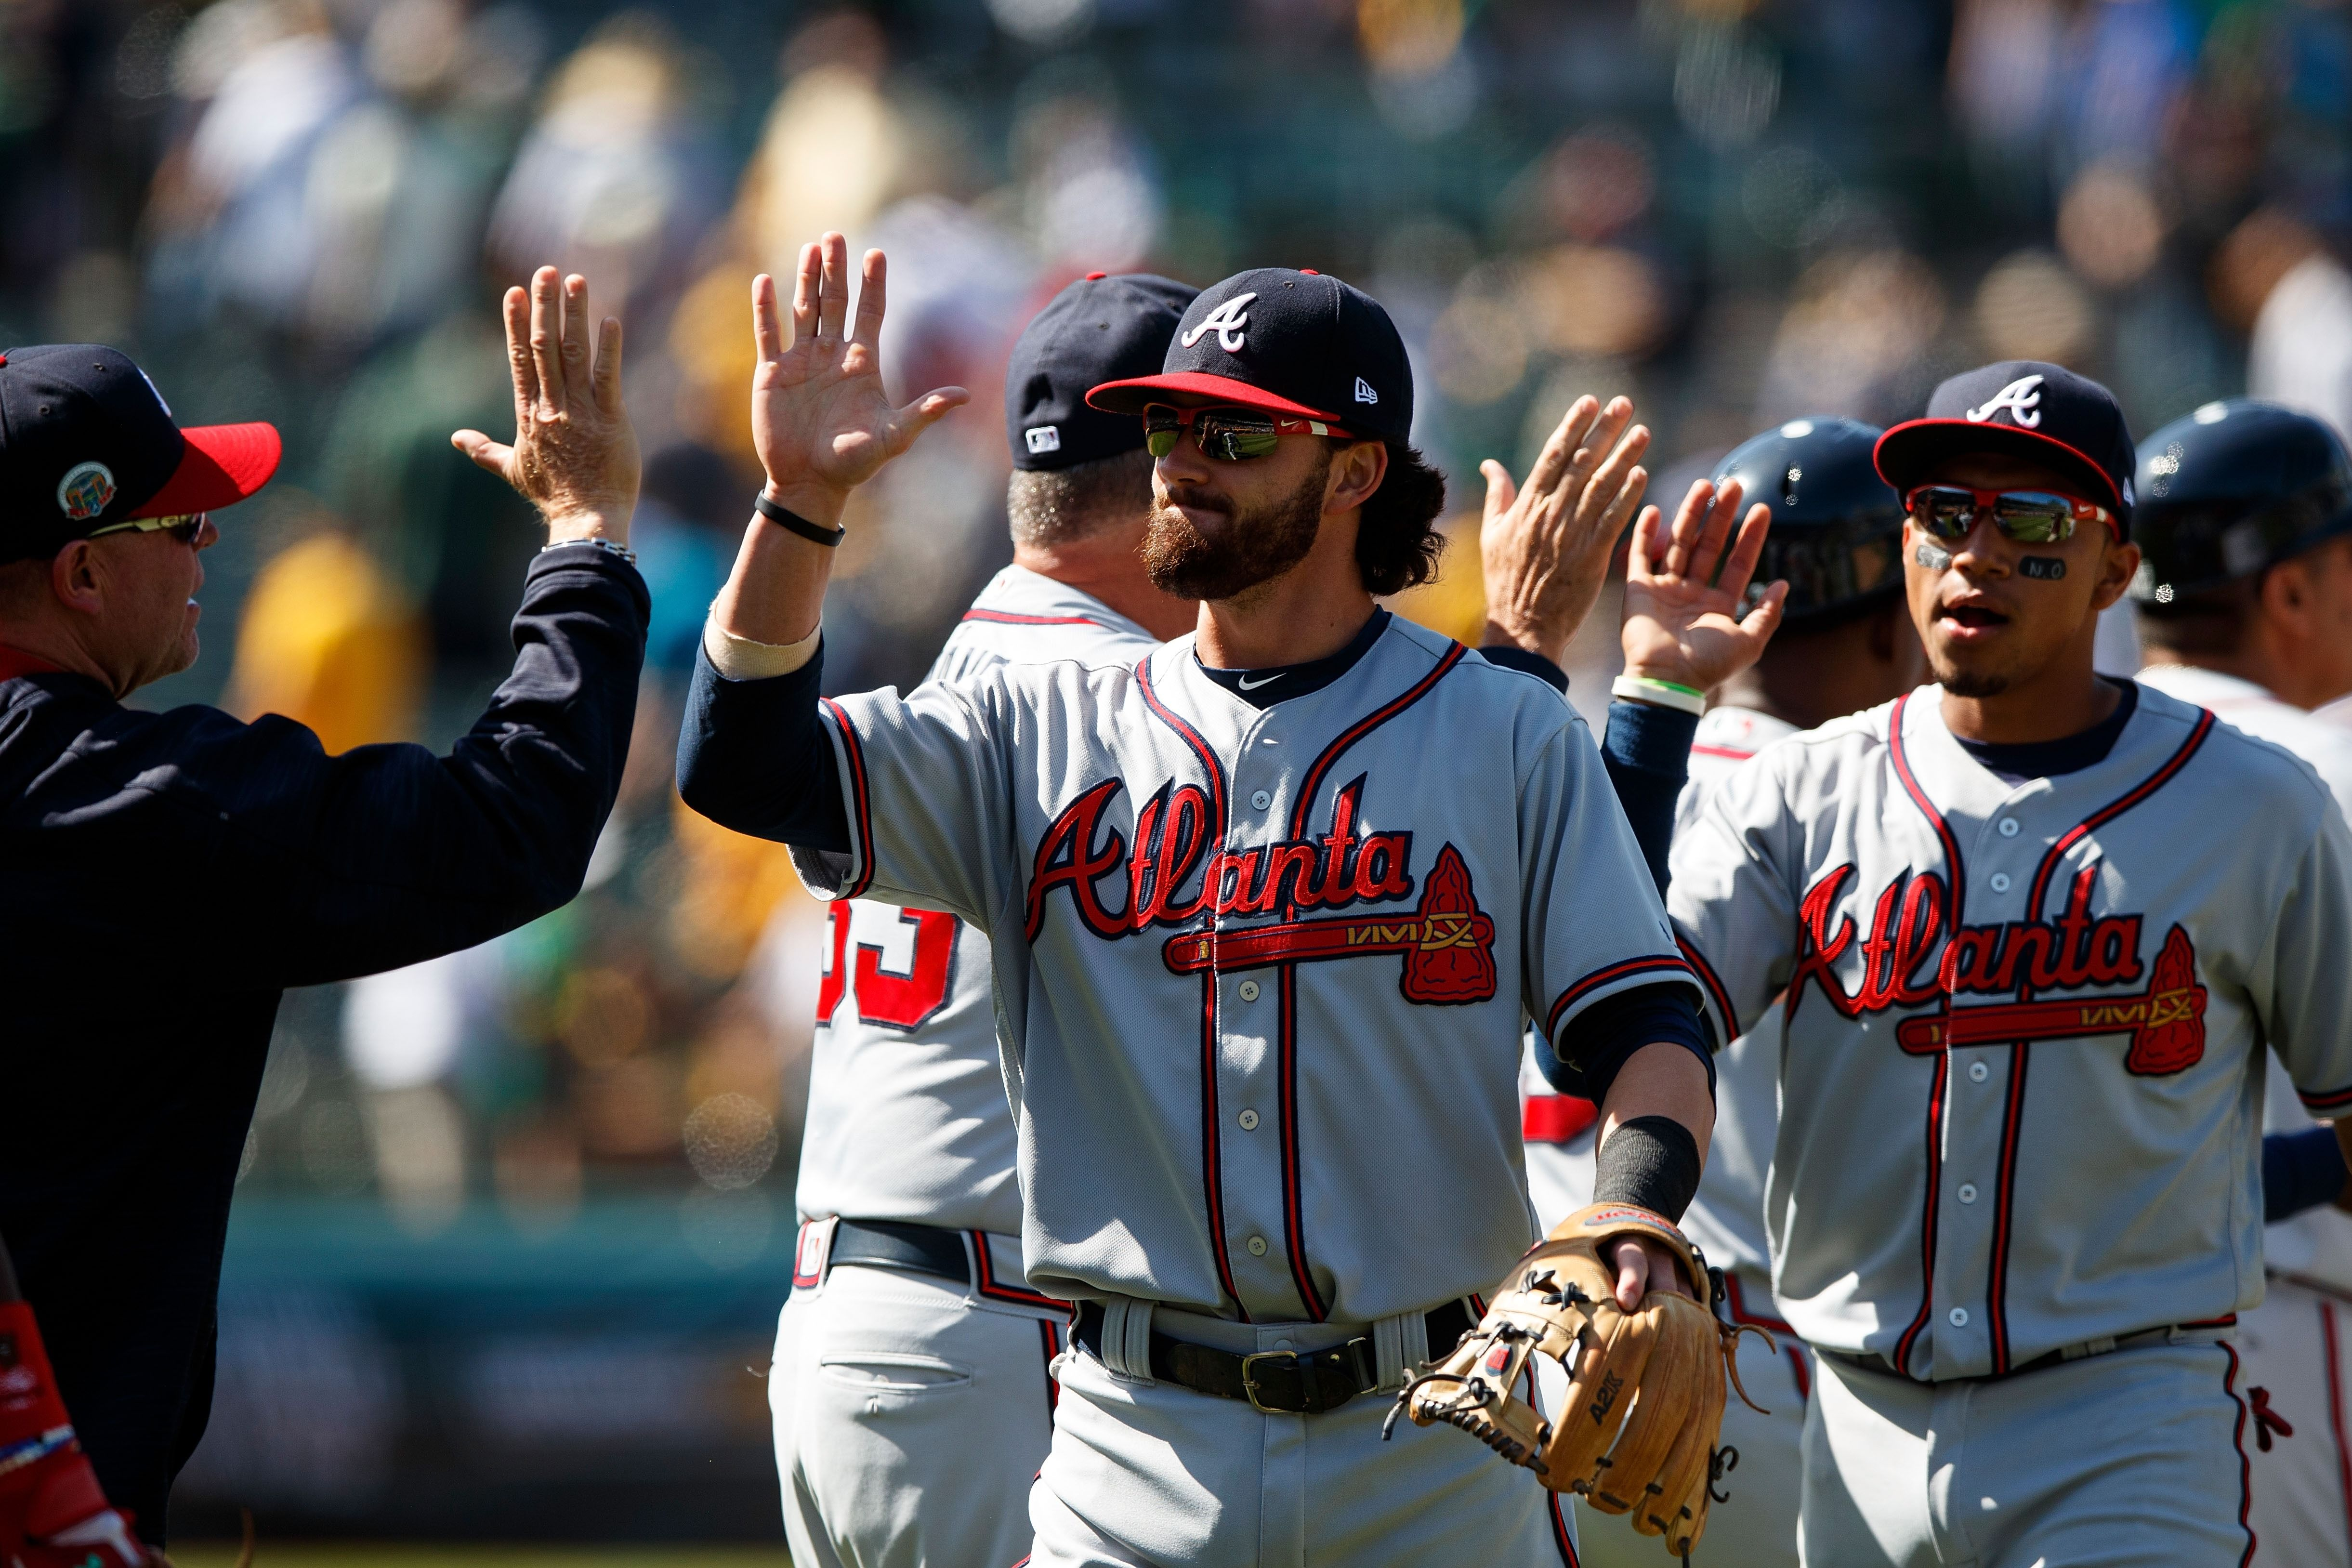 Oakland Ca July 01 Dansby Swanson 7 Of The Atlanta Braves Celebrates With Teammates After The Game Against T Atlanta Braves Baseball Atlanta Braves Braves